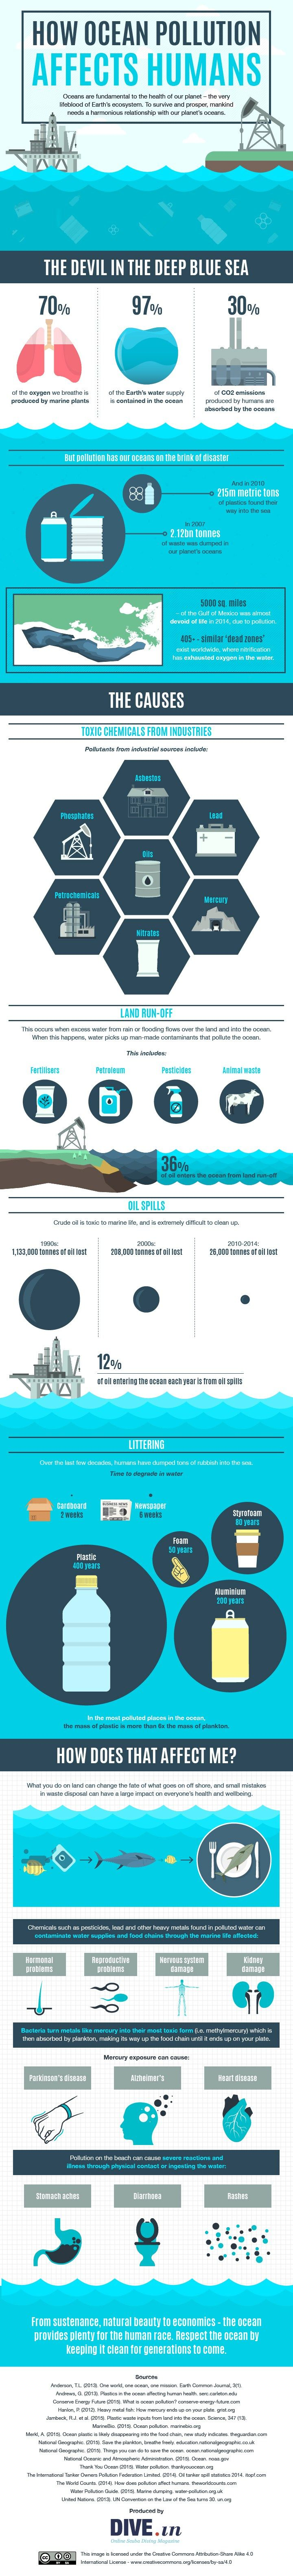 How Ocean Pollution affects humans [Infographic]   ecogreenlove